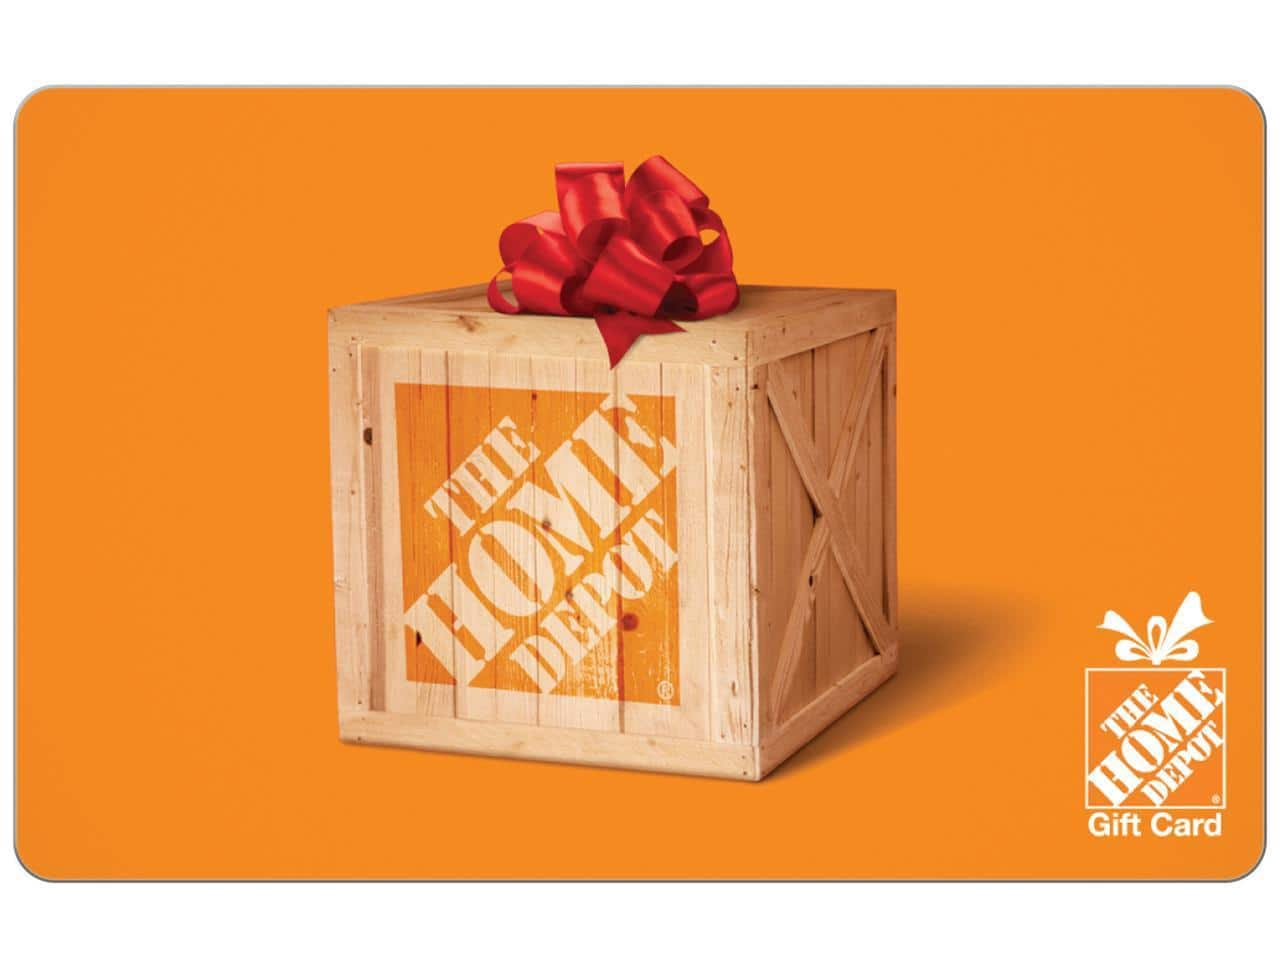 (Out of Stock) Newegg - $110 Home Depot Gift Card for $100. Limit 2